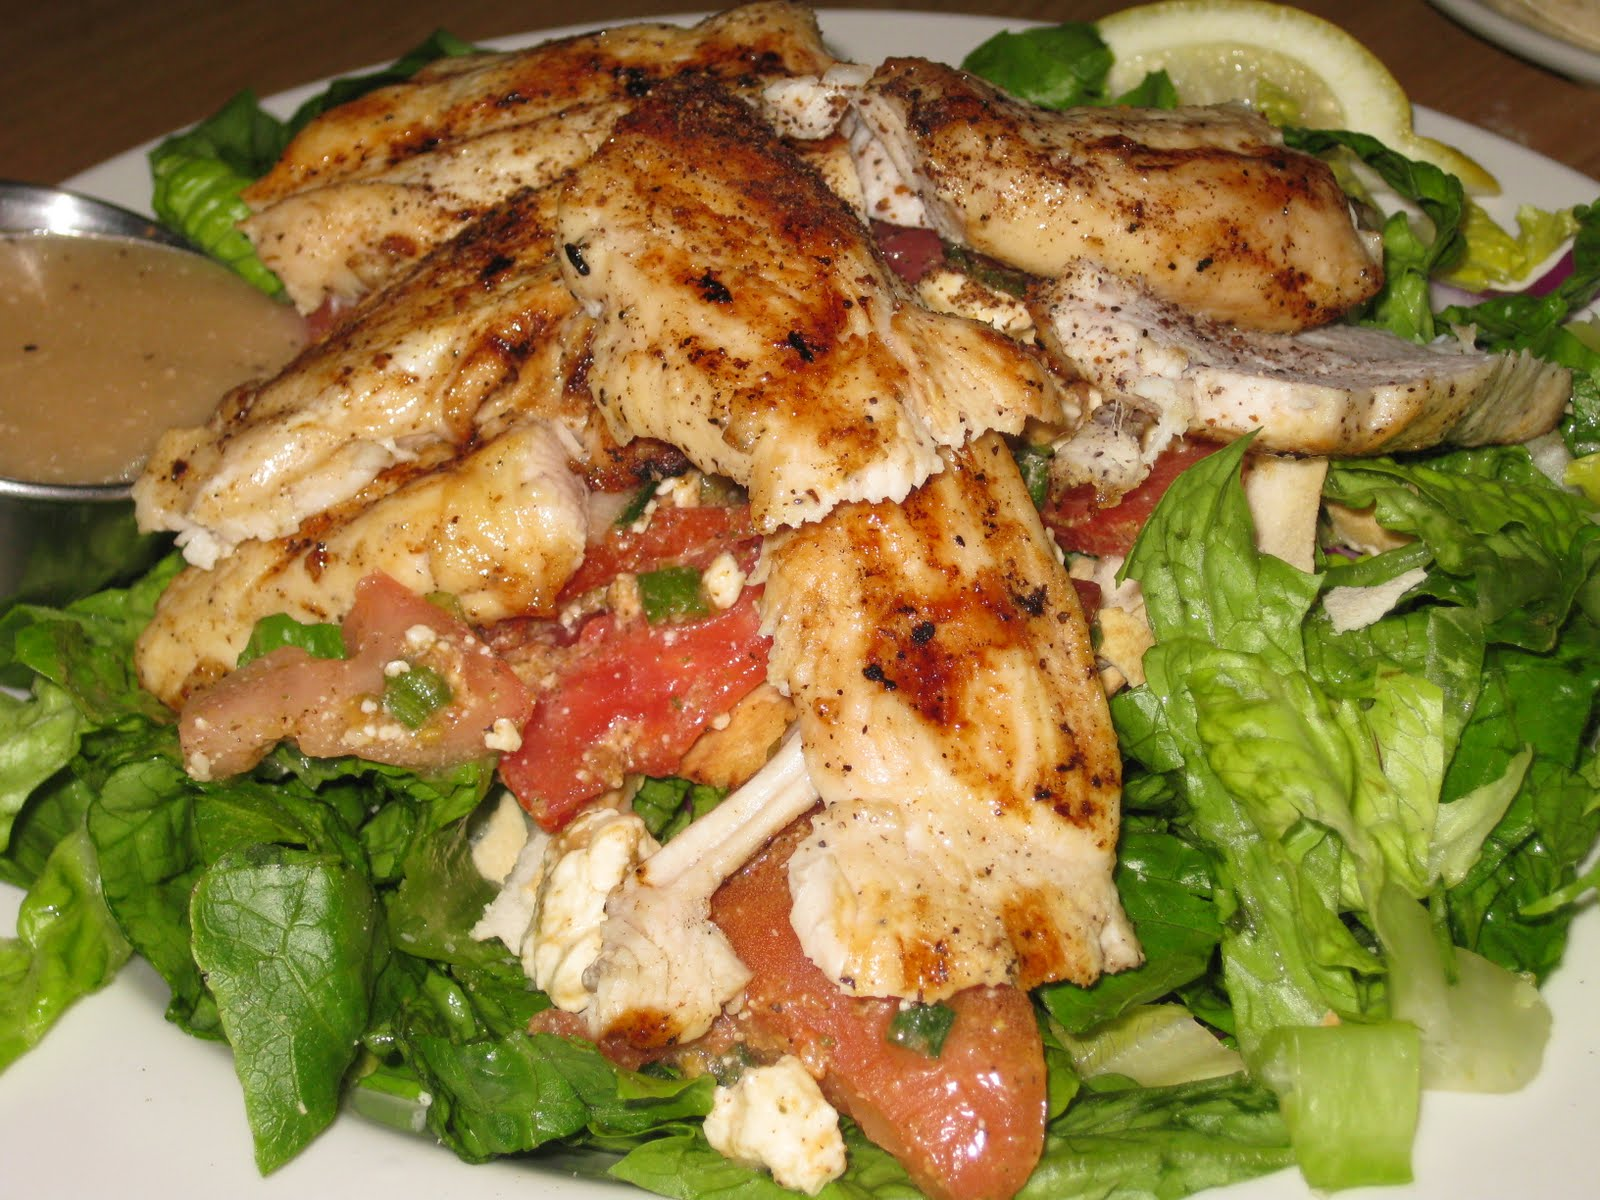 ... chicken salad and i have had many a grilled chicken salads in my time